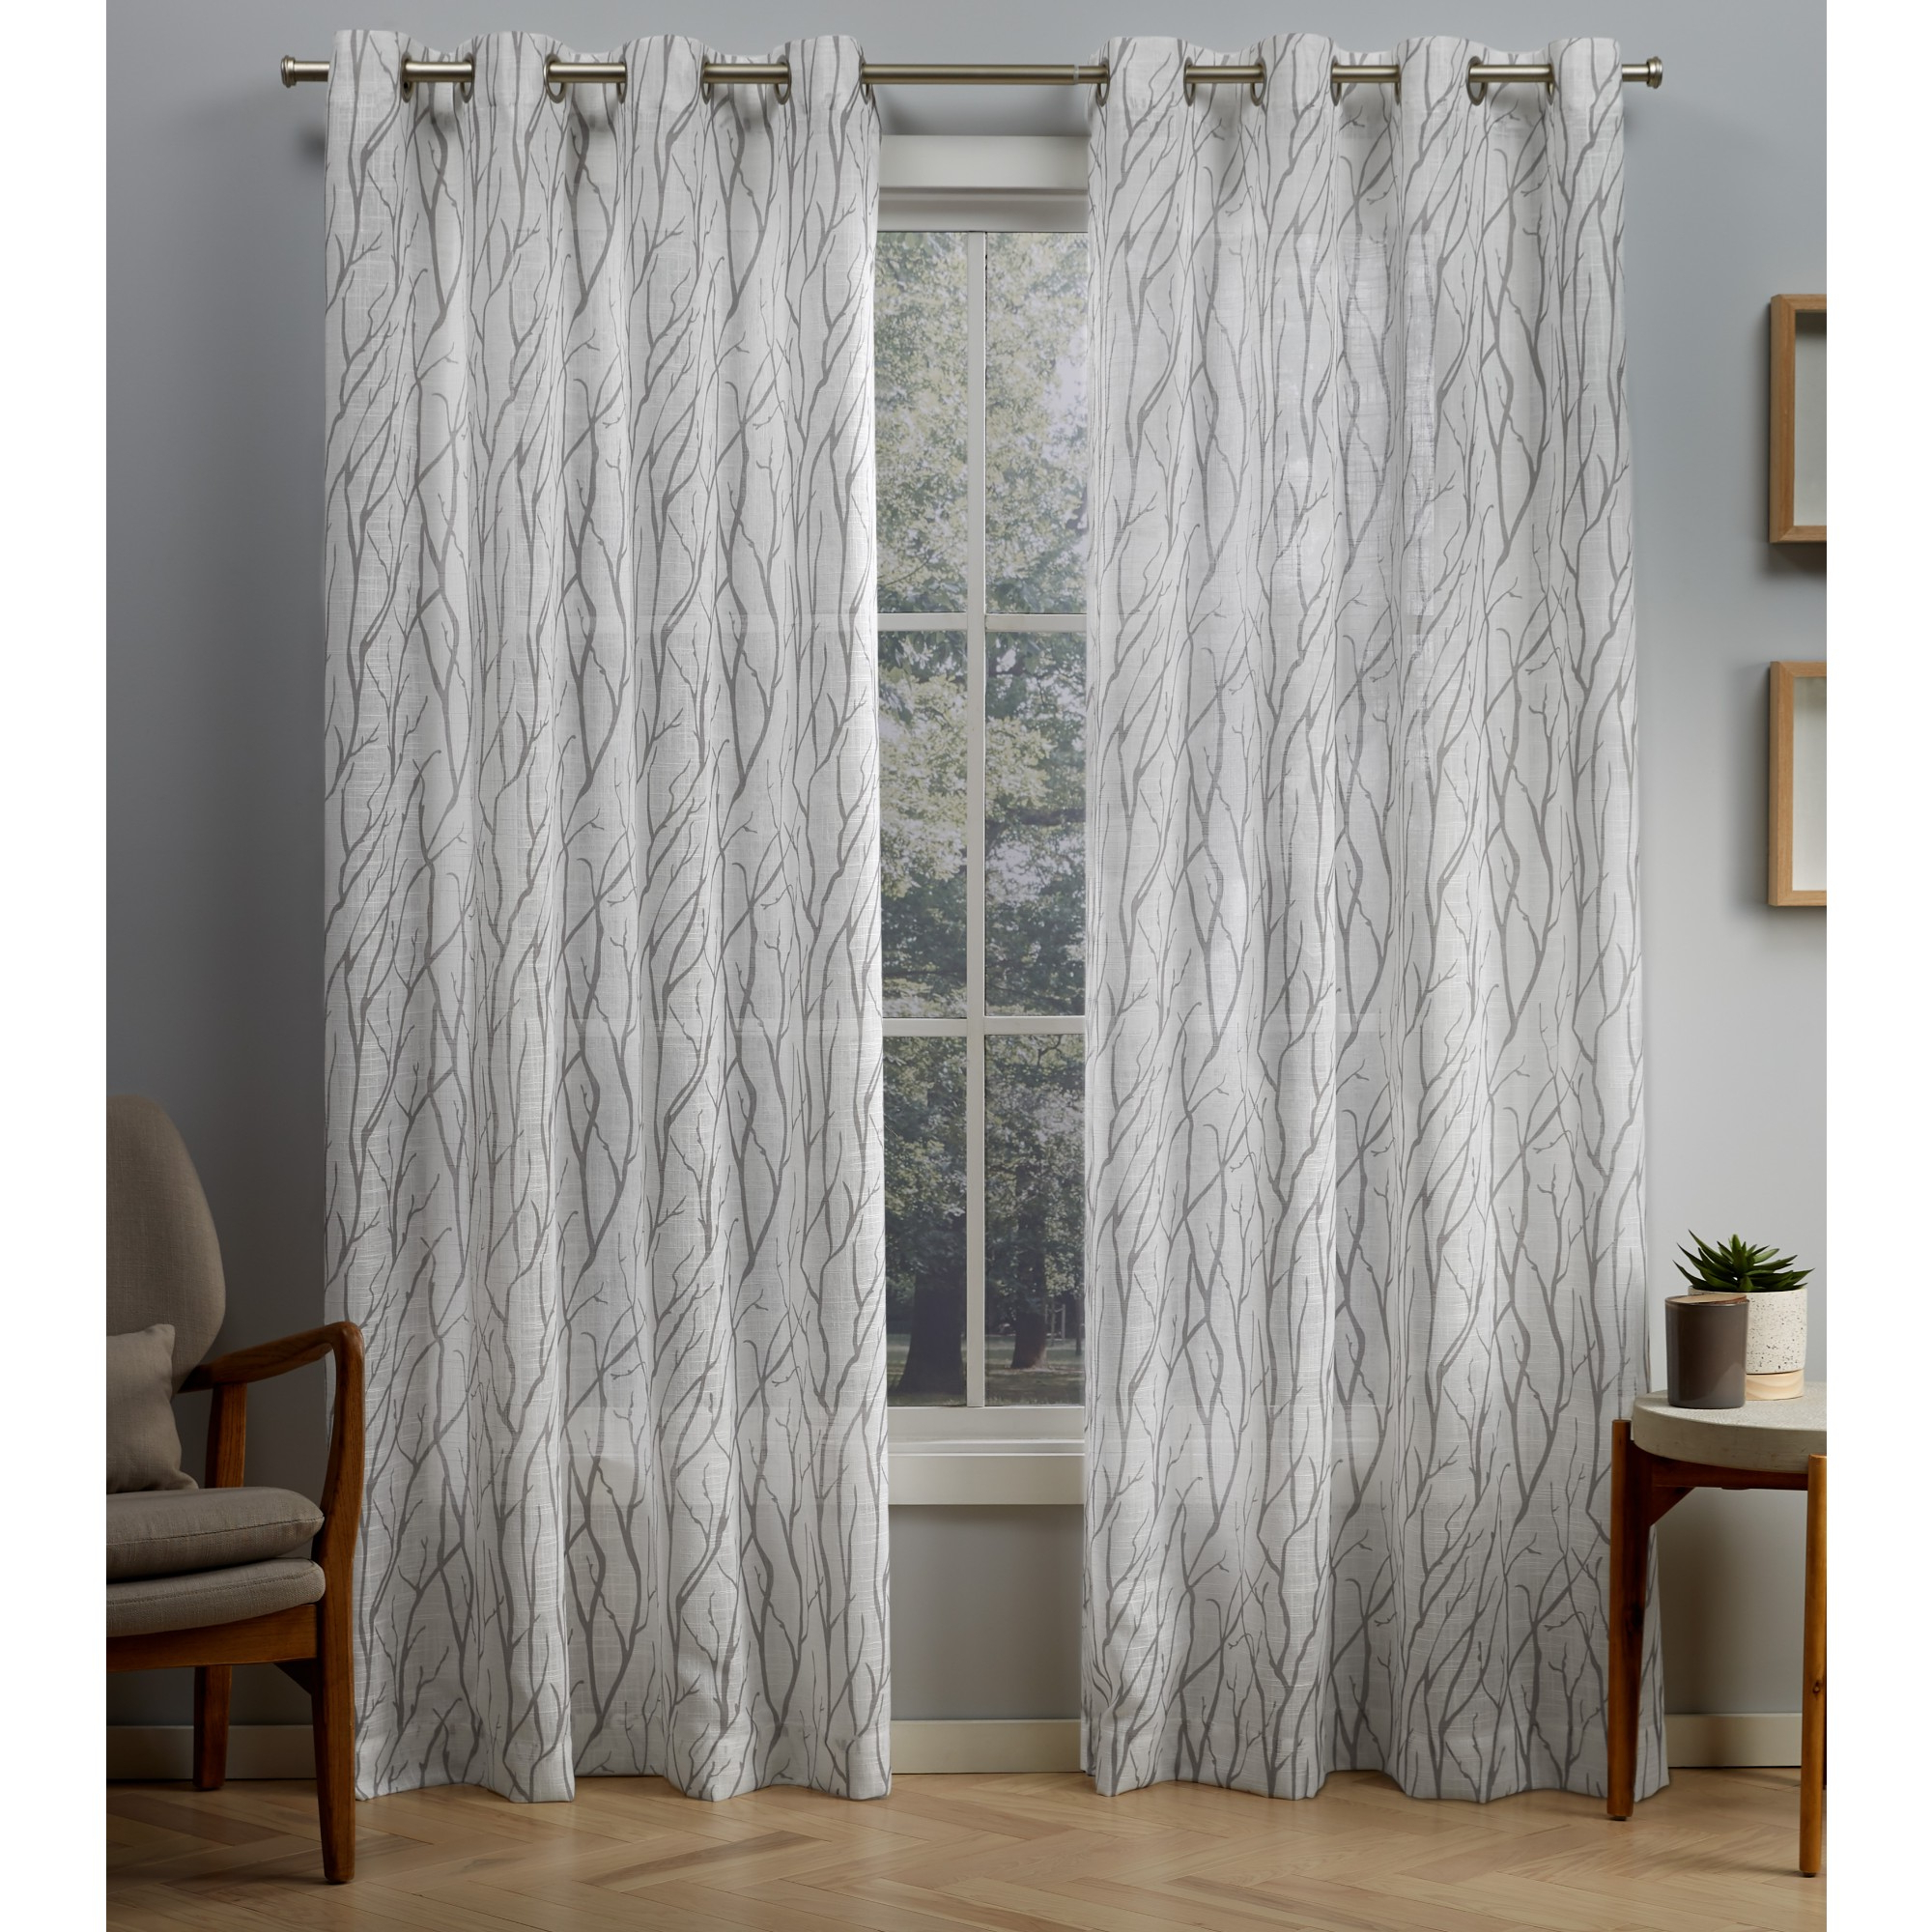 Oakdale Textured Linen Sheer Grommet Top Curtain Panel Pairs Intended For Well Known Exclusive Home Curtains 2 Pack Oakdale Motif Textured Linen Grommet Top  Curtain Panels (View 12 of 20)